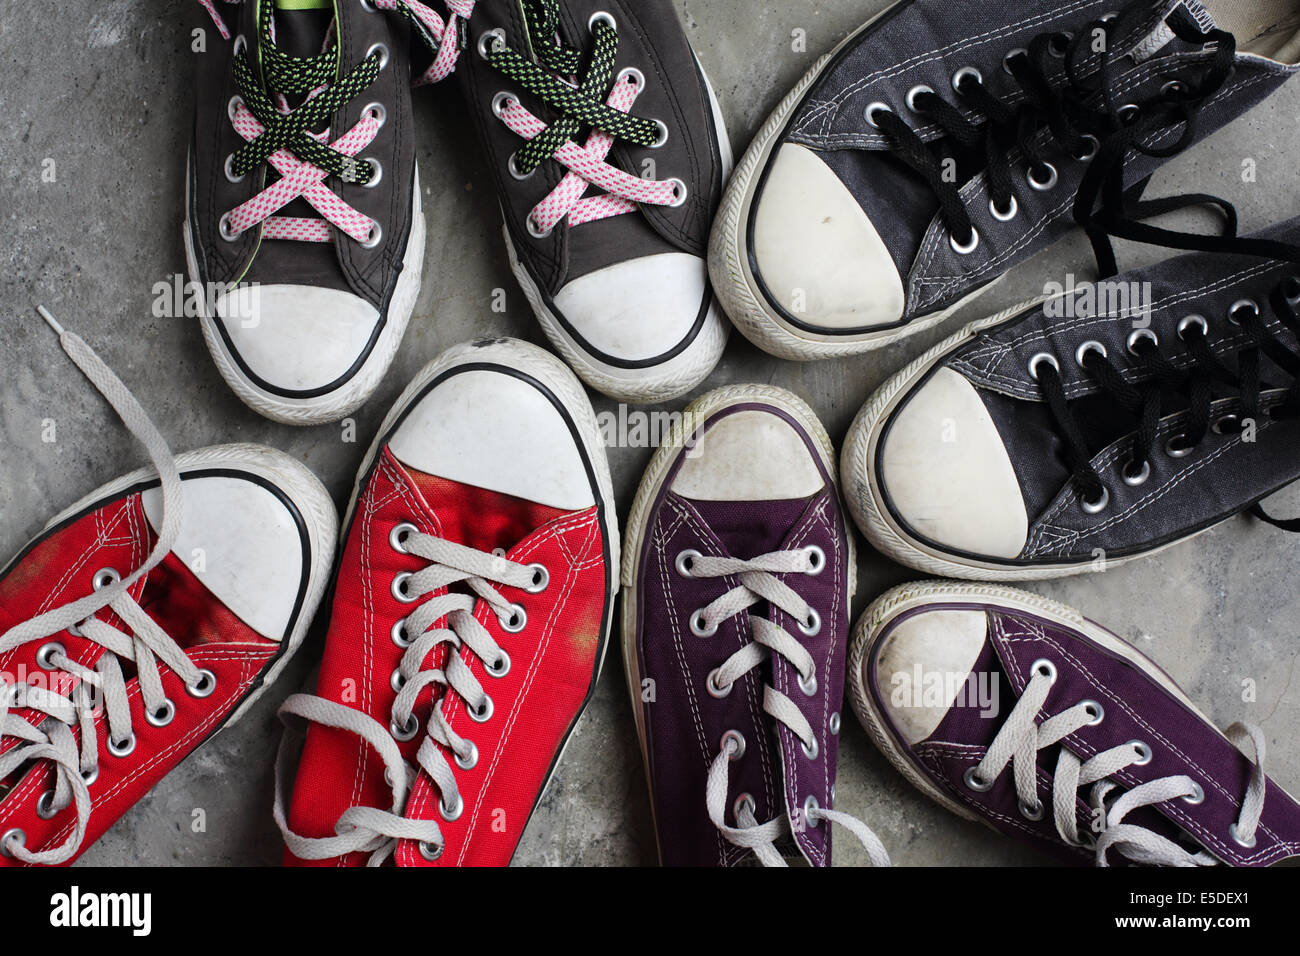 Four pairs of Converse shoes shot against a concrete background - Stock Image